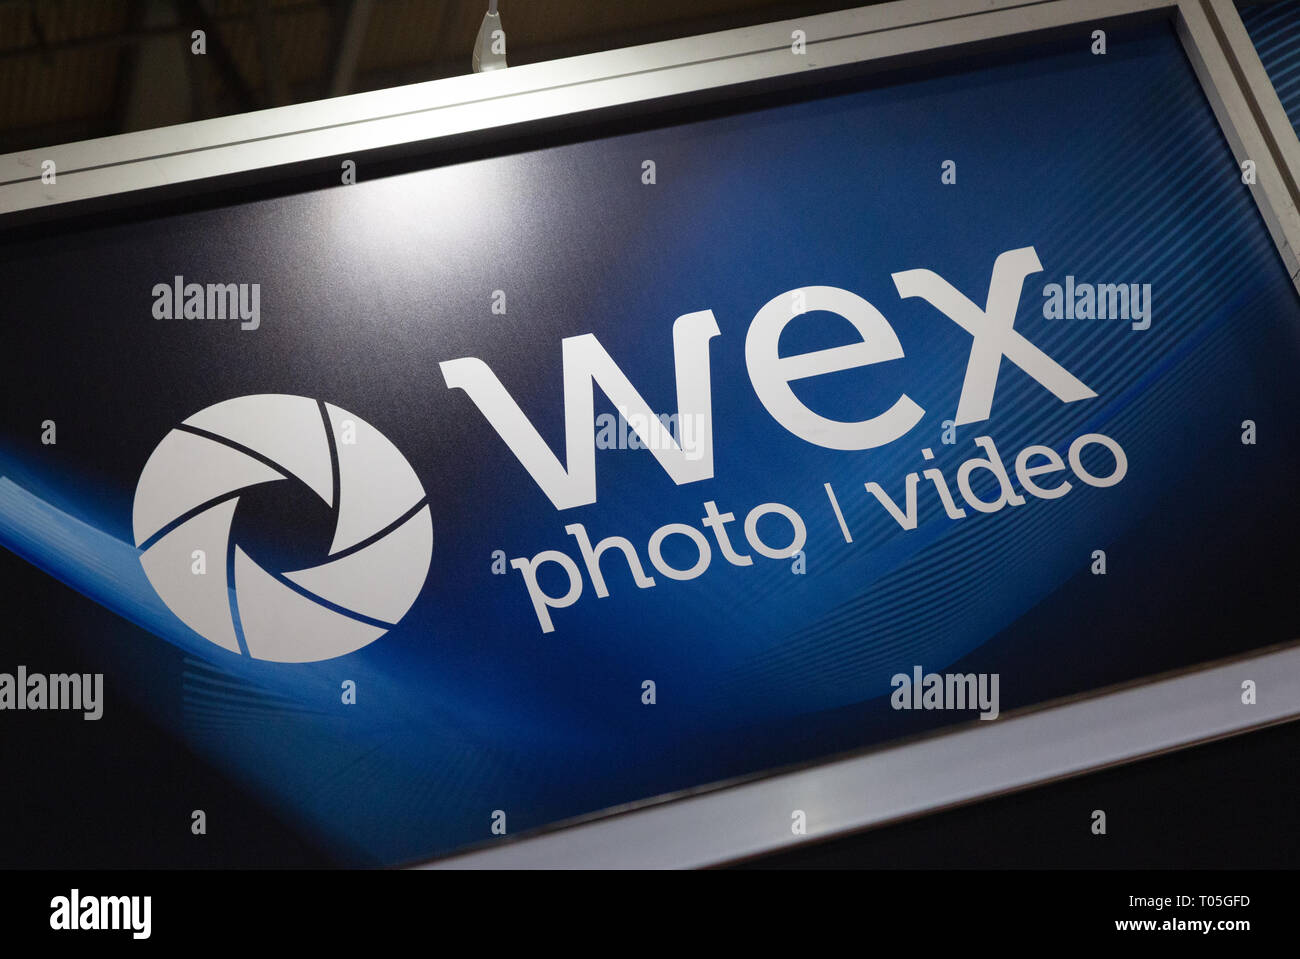 Wex Photo Video Norwich sign - formerly Wex Photographic, a photographic retailer based in Norwich, UK - Stock Image